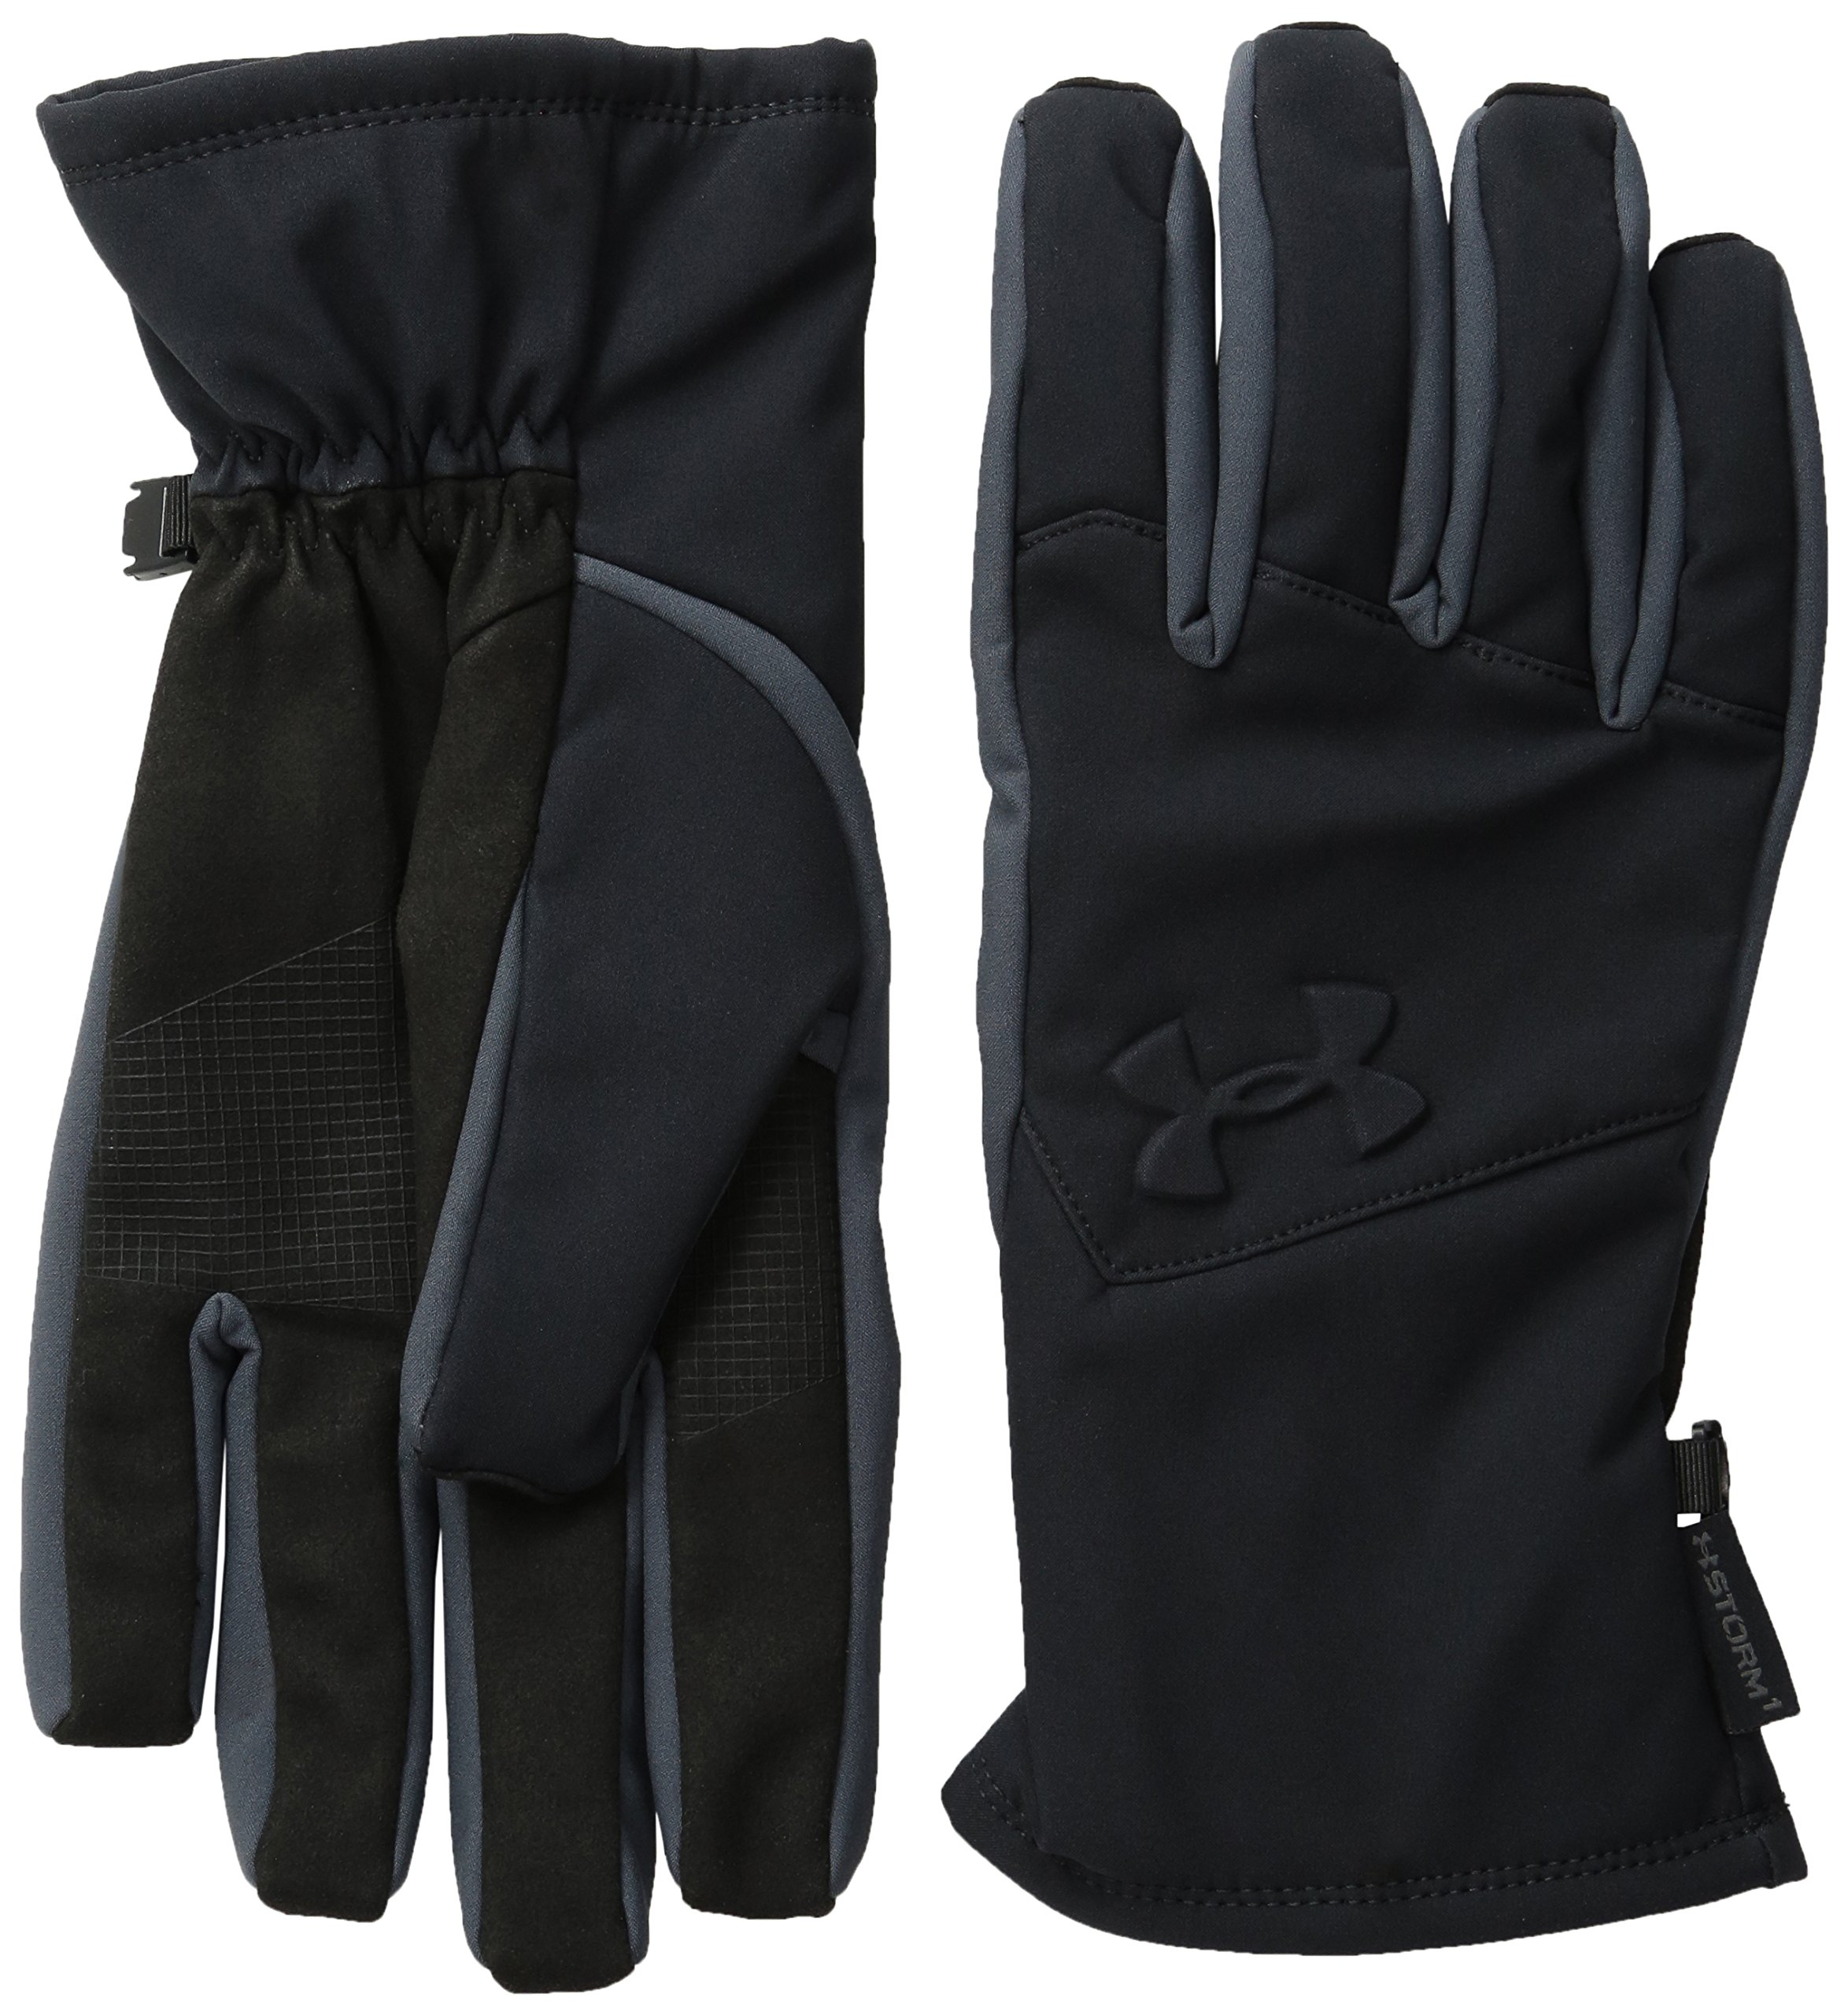 Under Armour ColdGear Infrared Softshell Gloves - Black